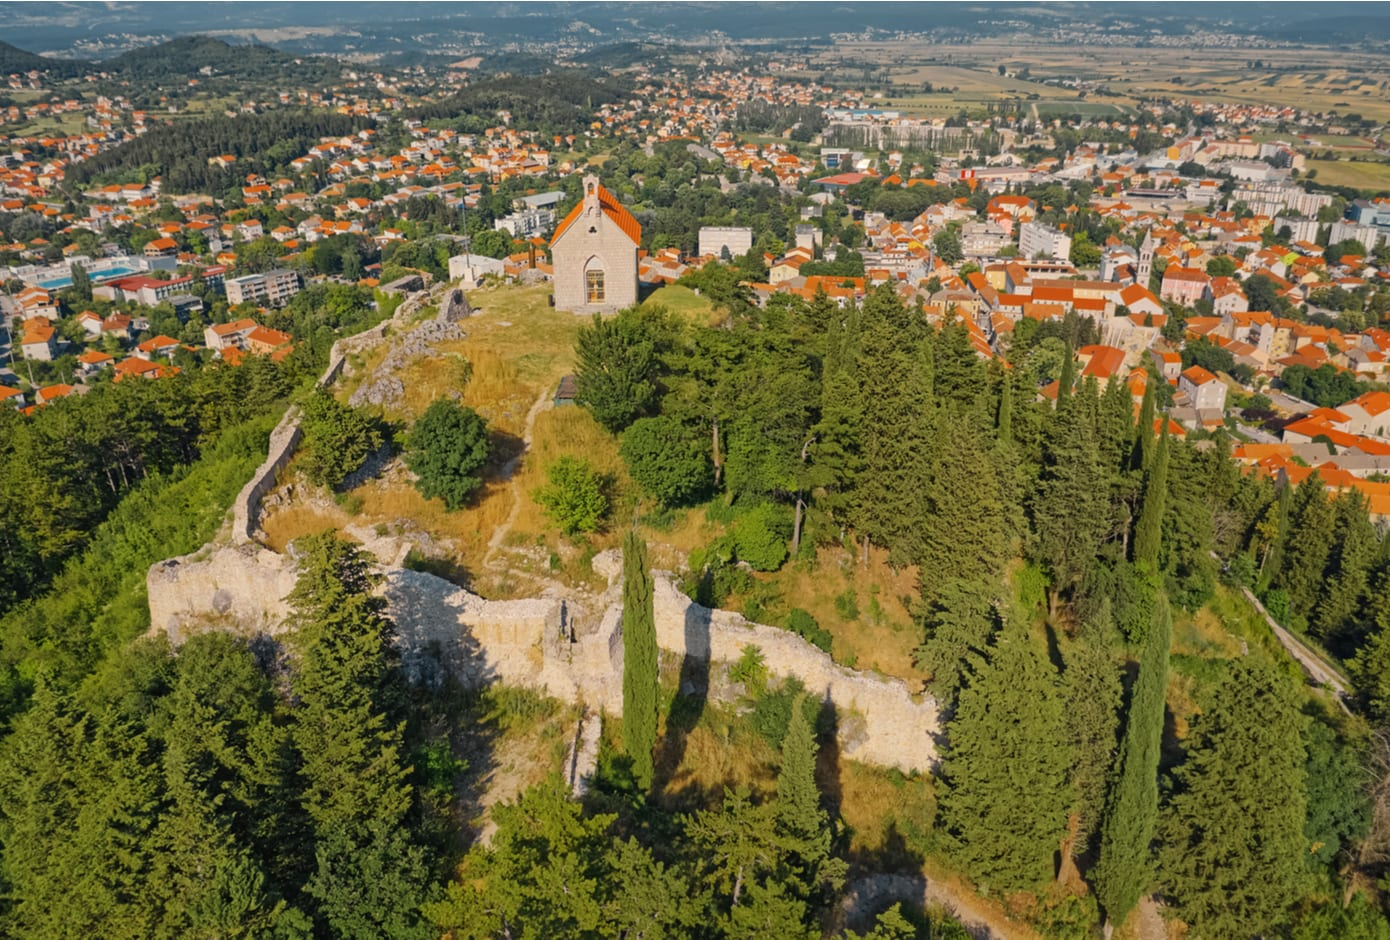 Aerial view of small picturesque town of Sinj in Croatia.